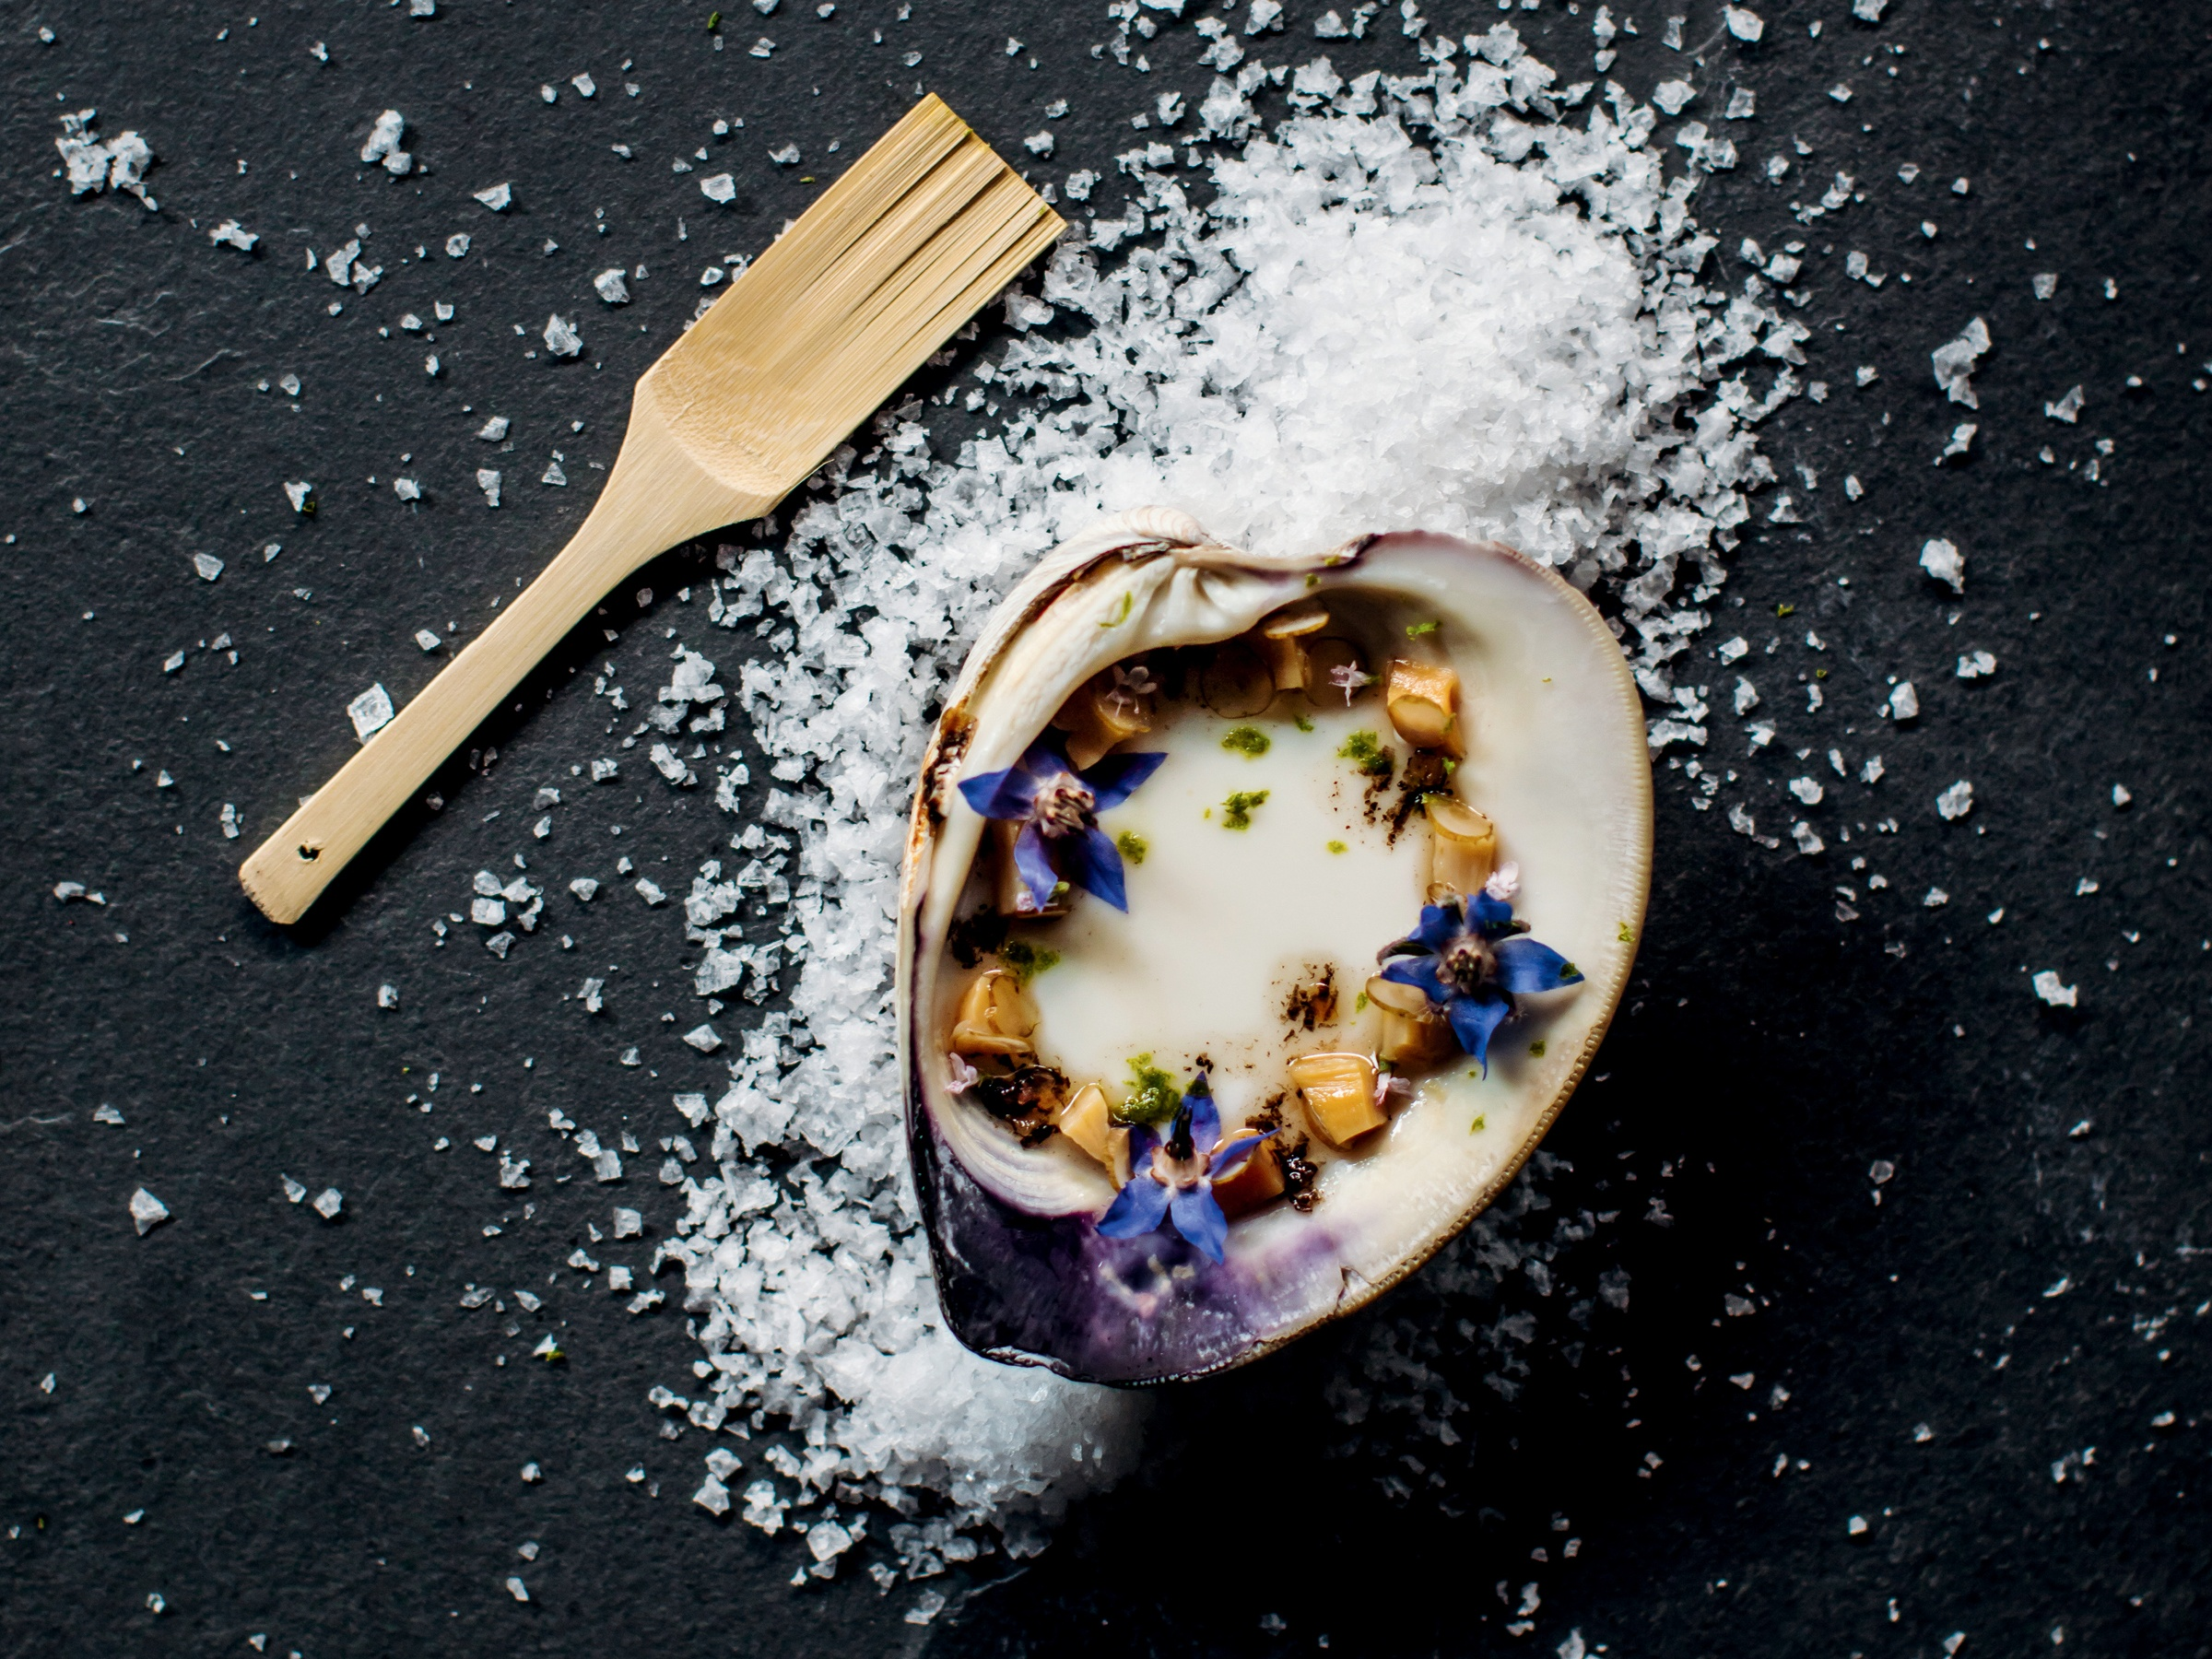 a shell with a creamy food and flowers in it on a bed of salt